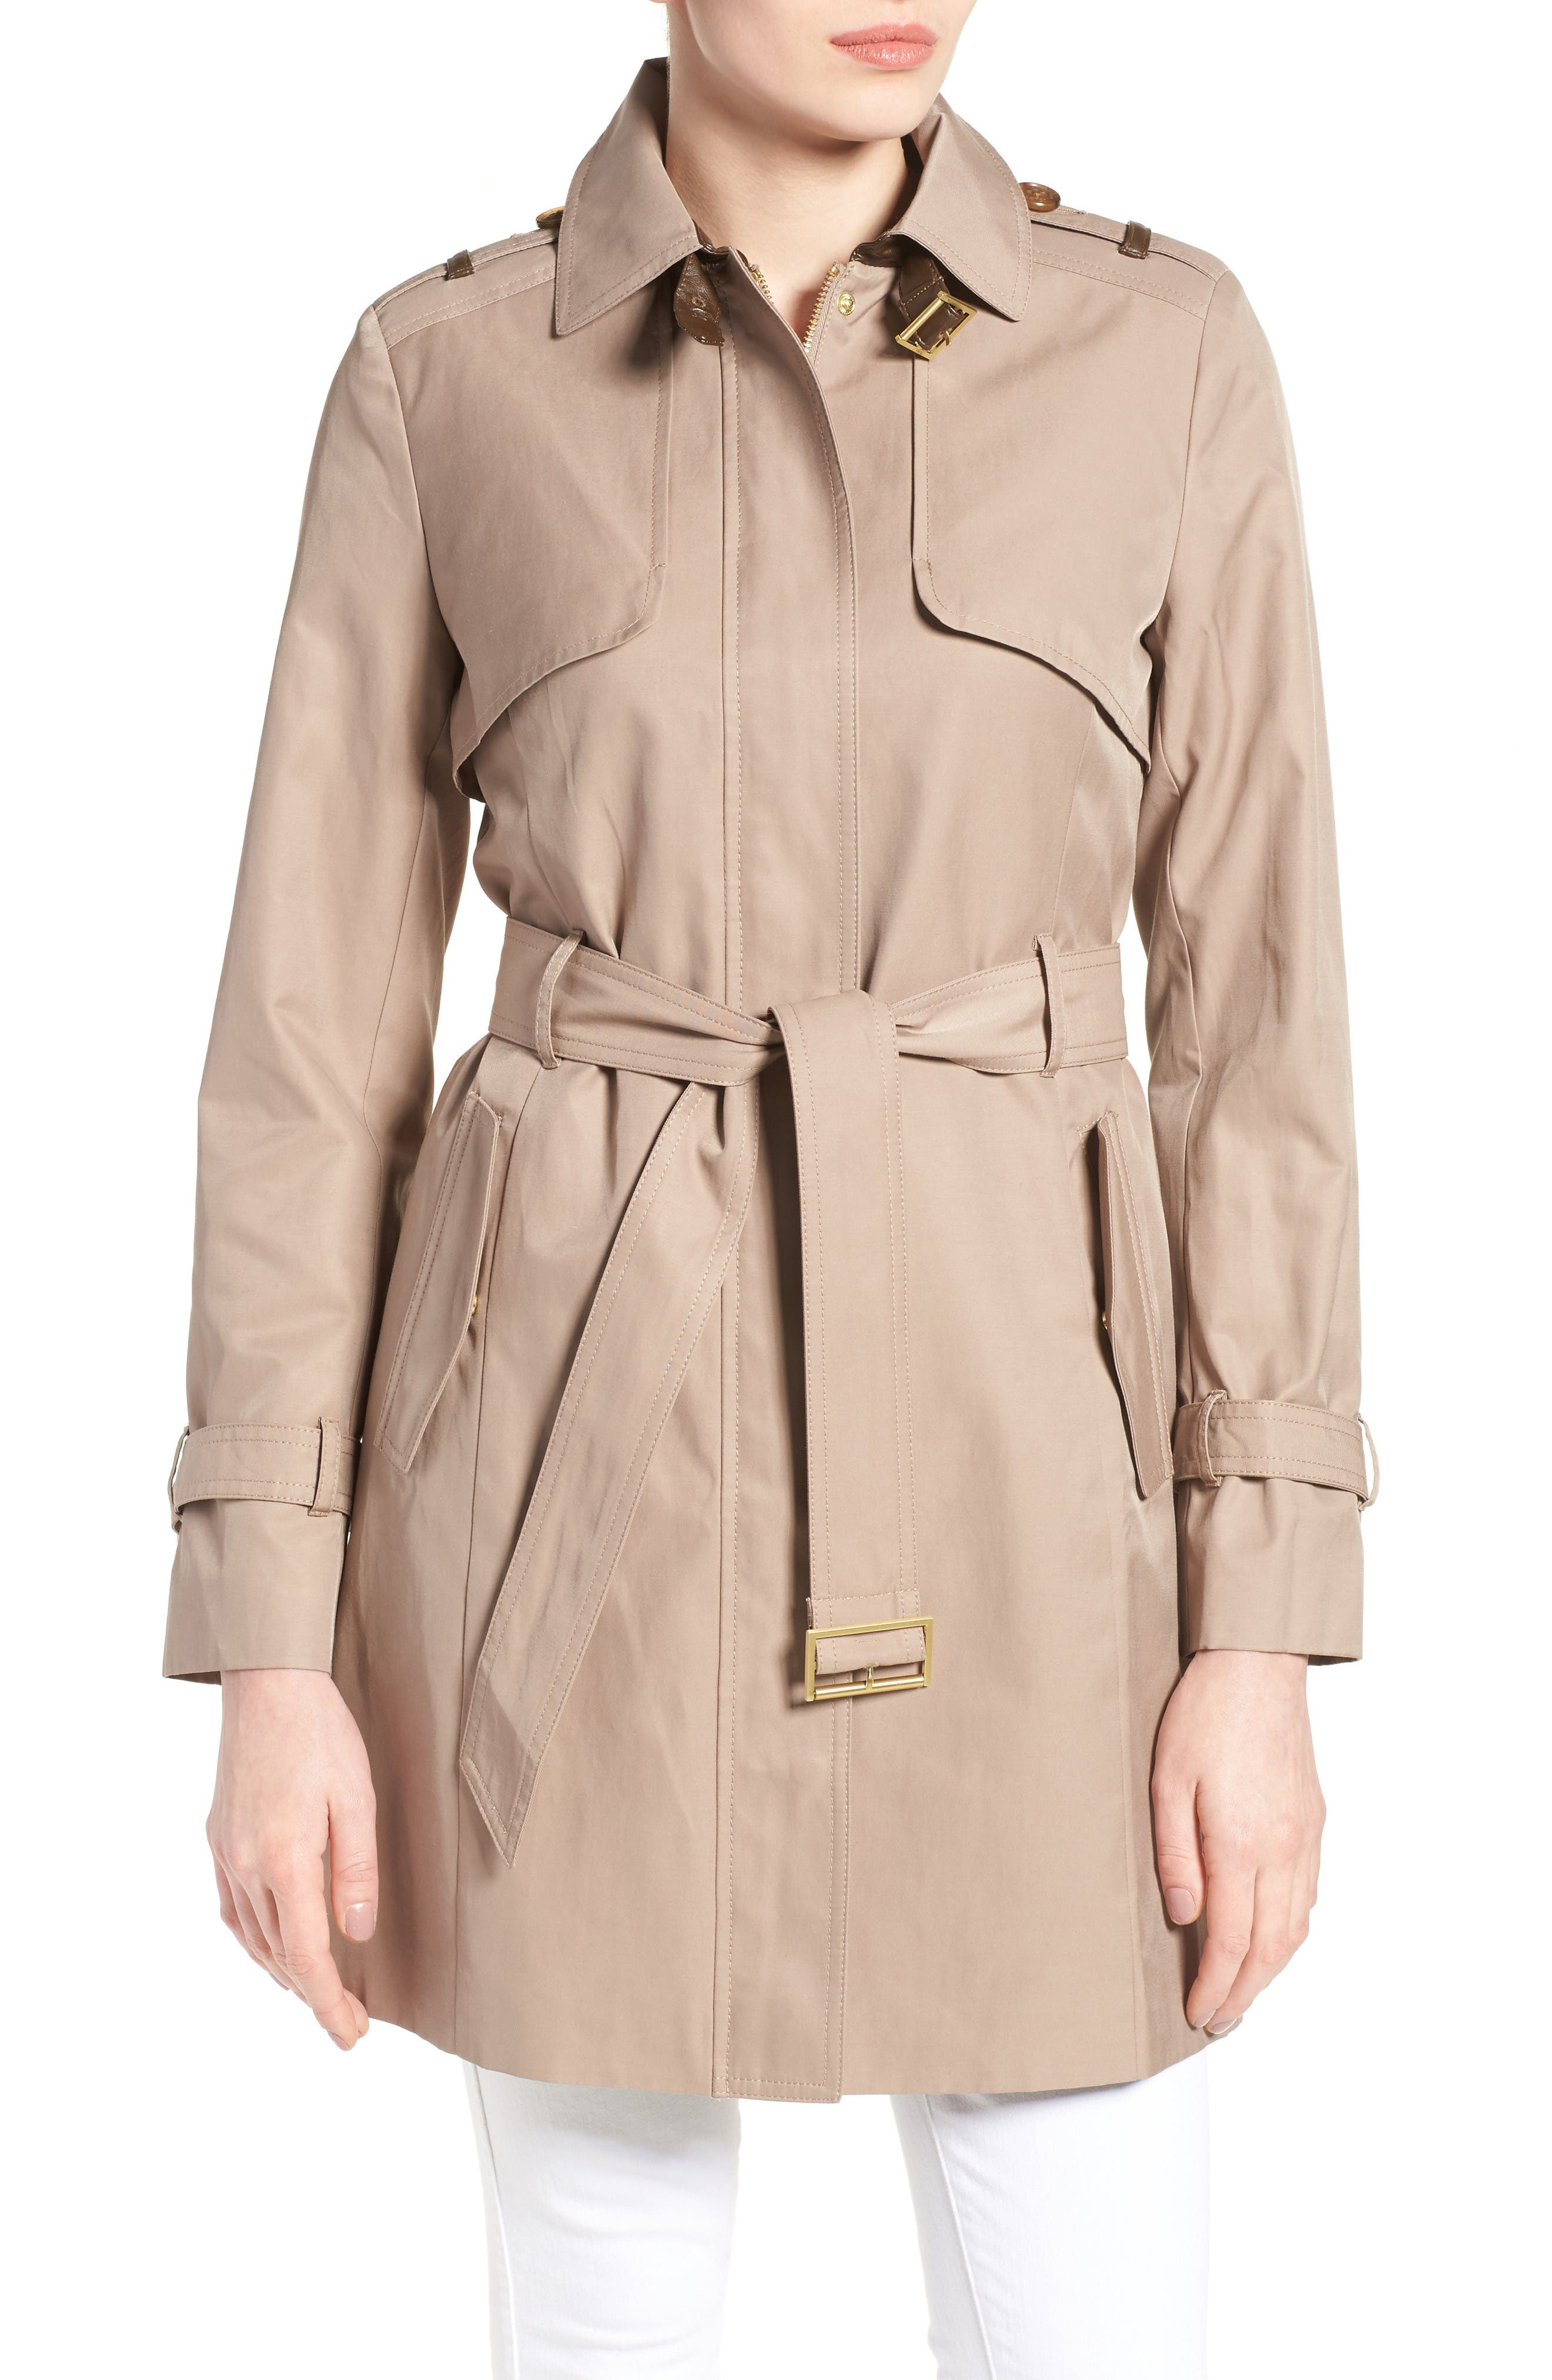 Alternate Image 1 Selected - Cole Haan Signature Faux Leather Trim Trench Coat